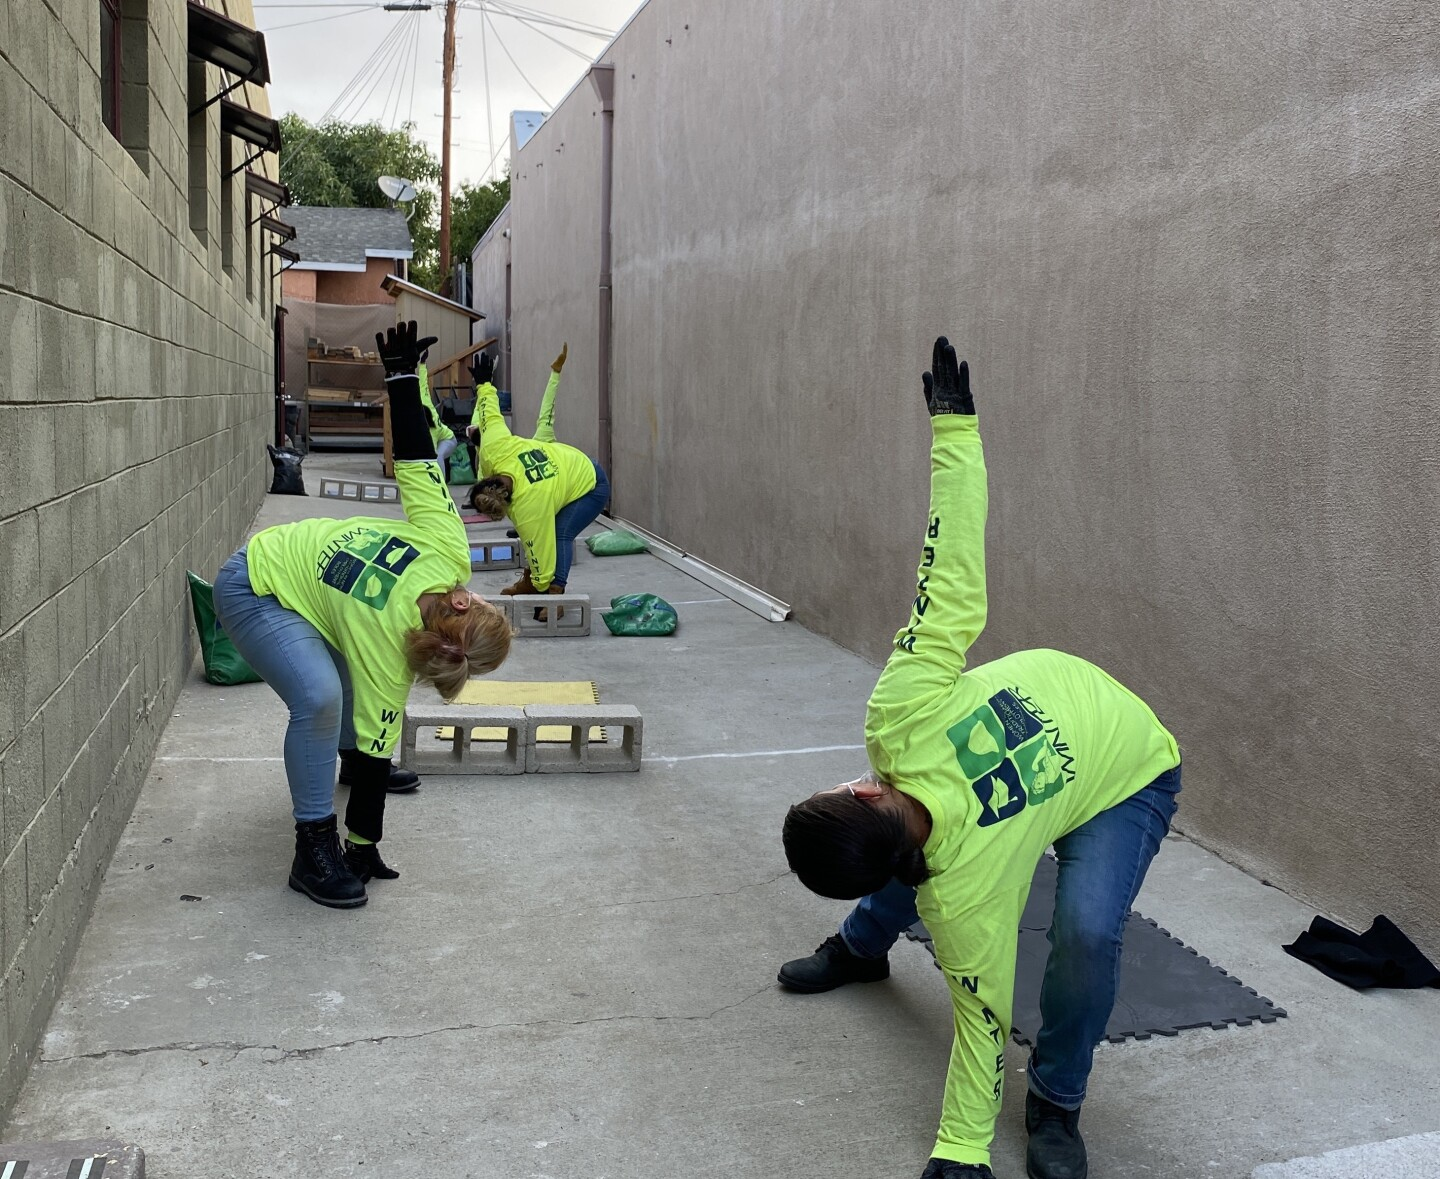 three women in a yard wearing yellow sweatshirts and jeans are exercising as cinder blocks lay around them